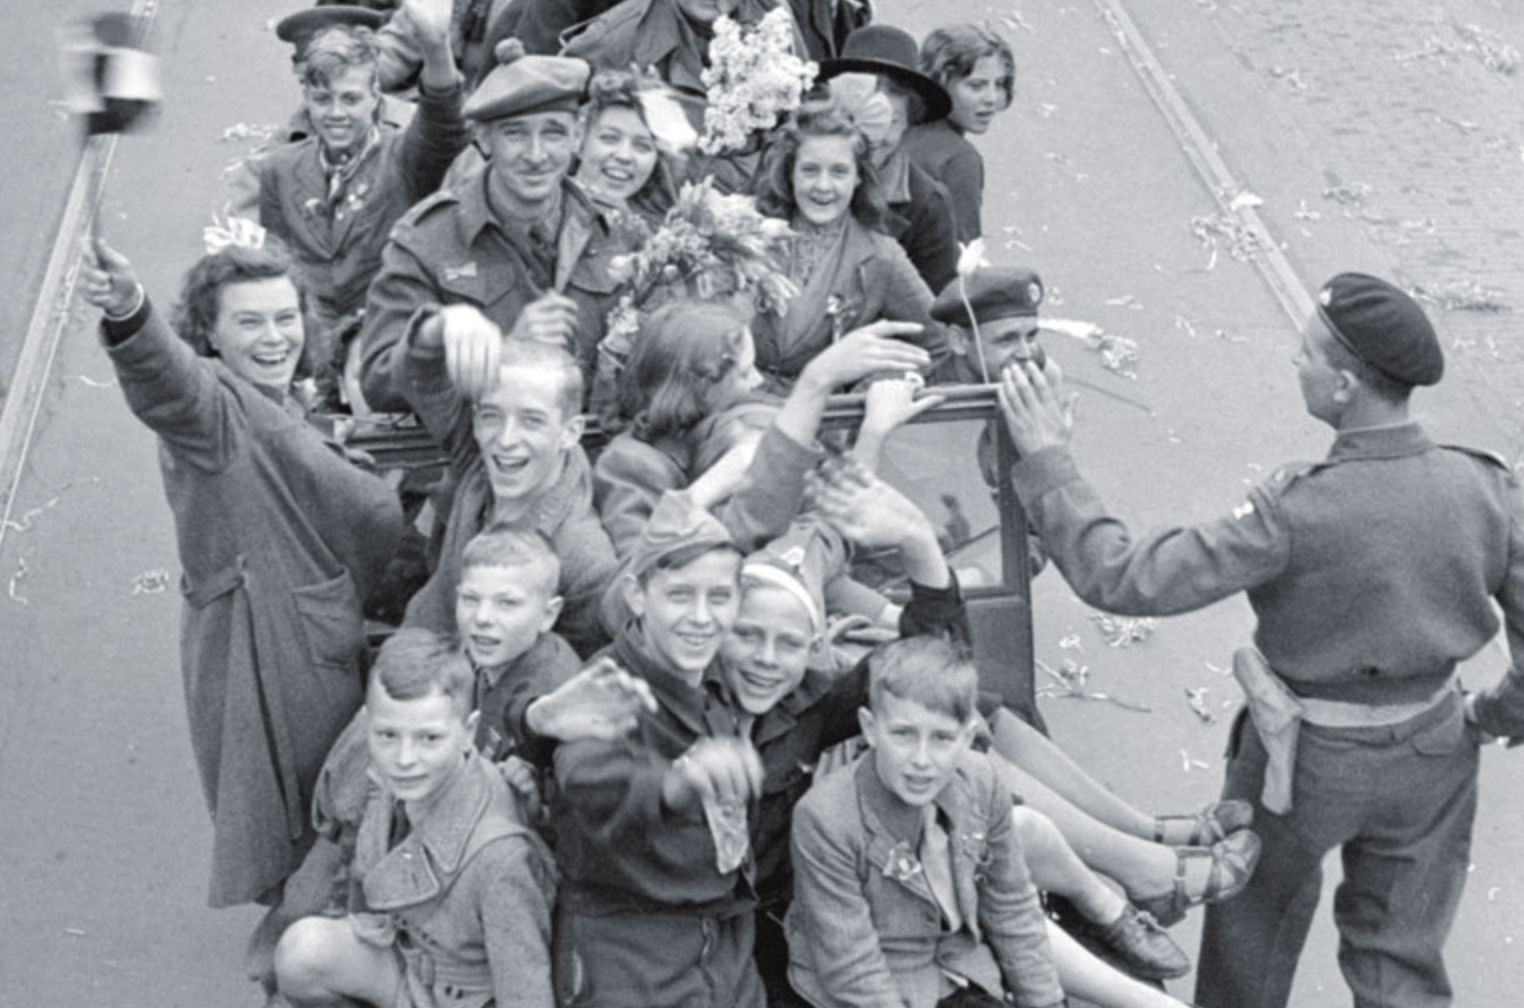 Happy Dutch citizens cheer Canadian soldiers who liberated them in Utrecht during World War 2.